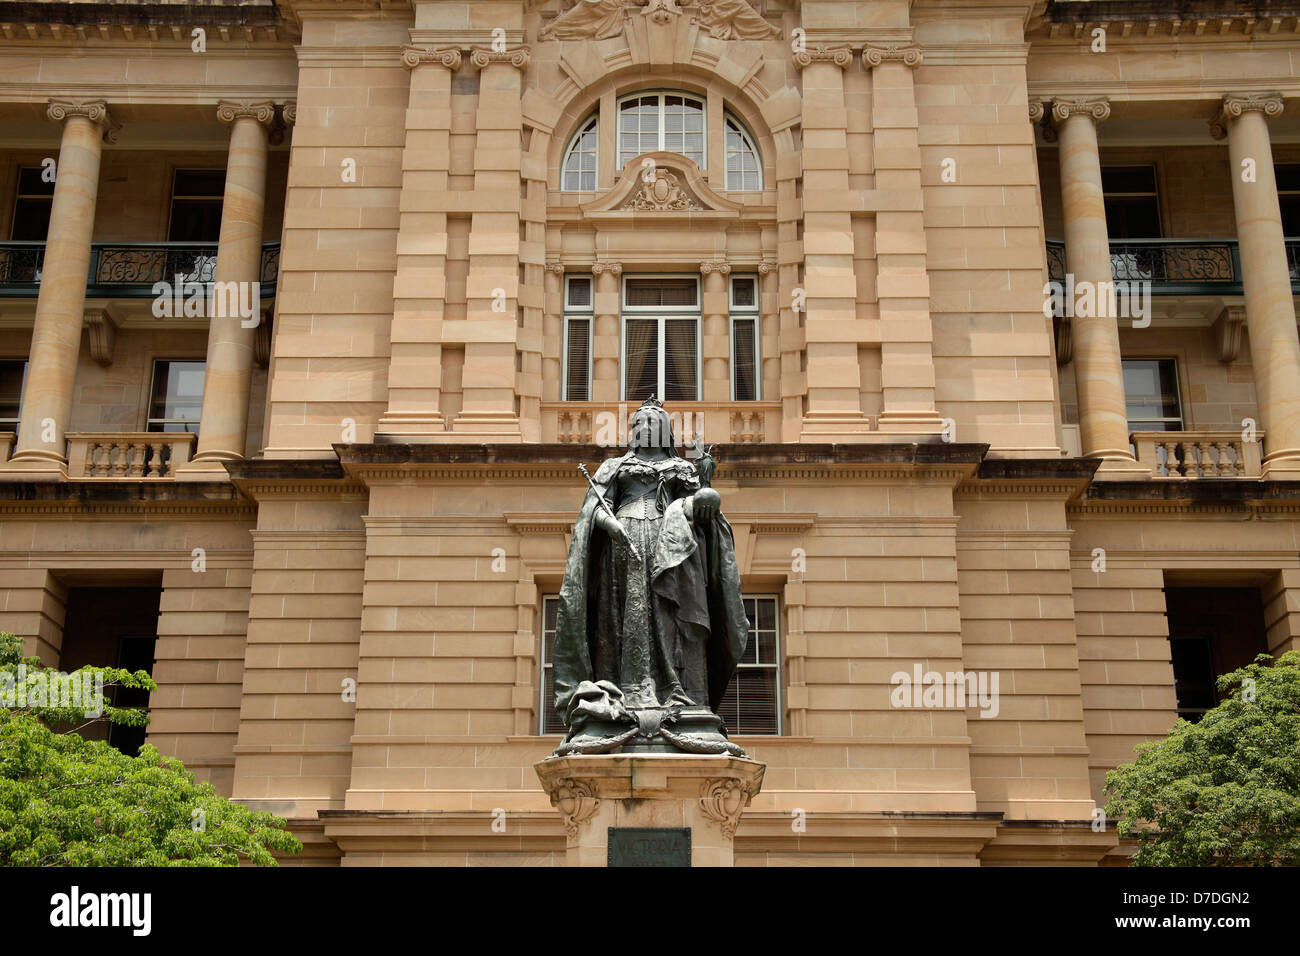 Statue of Queen Victoria and the Lands Administration Building in Queens Gardens in Brisbane, Queensland, Australia - Stock Image